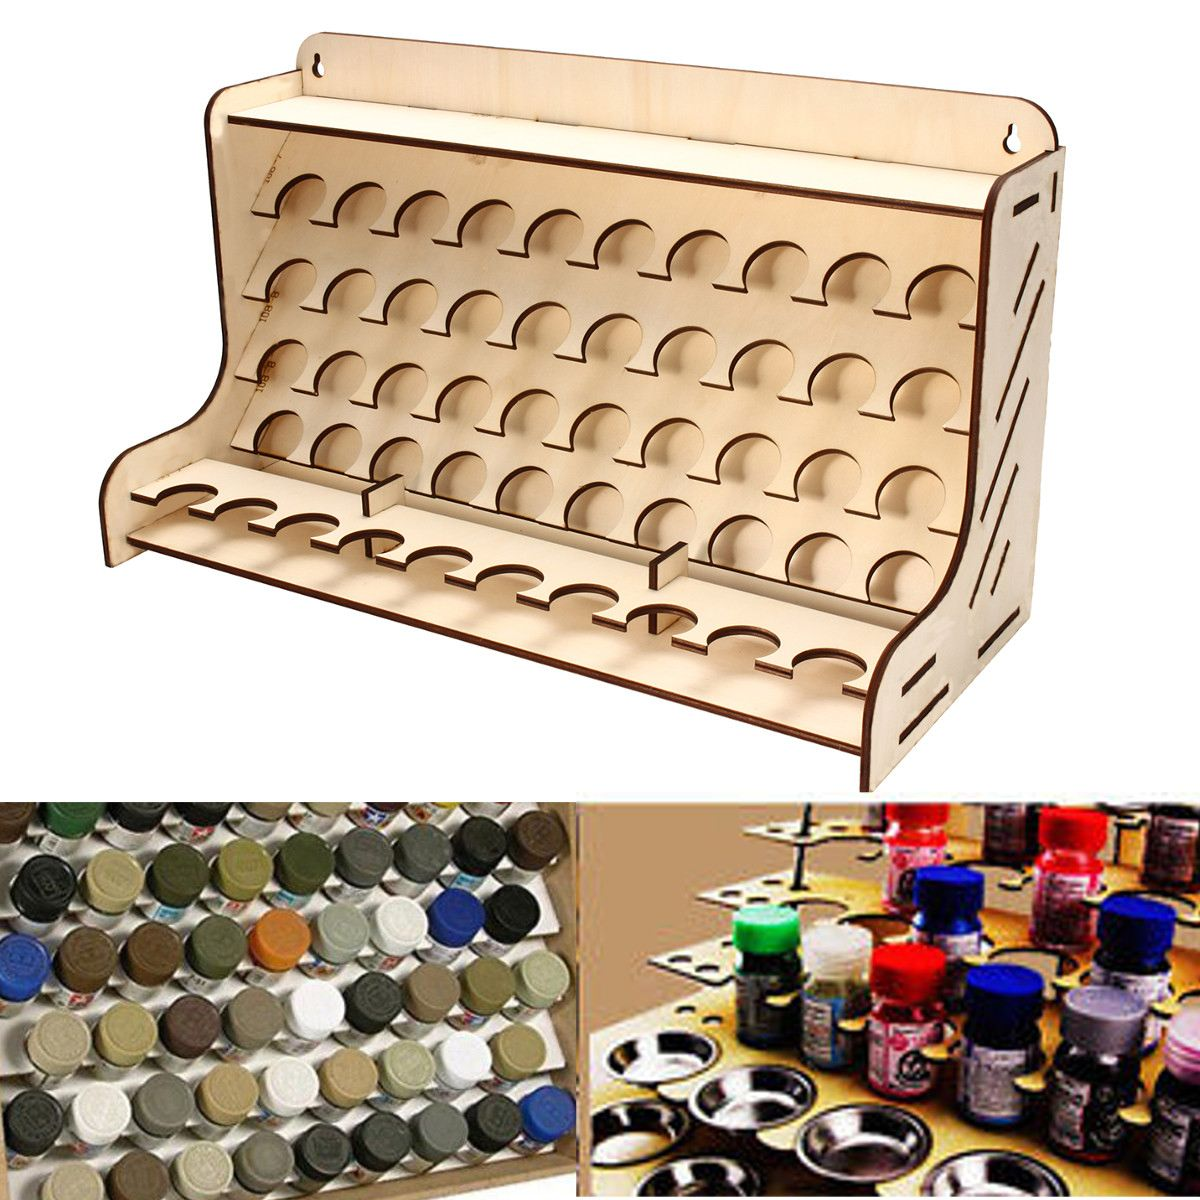 50 Pots Wooden Pigment Bottles Storage Organizer Color Paints Stand Rack Holder Drawing Storage Accessories 48.5x21x28cm